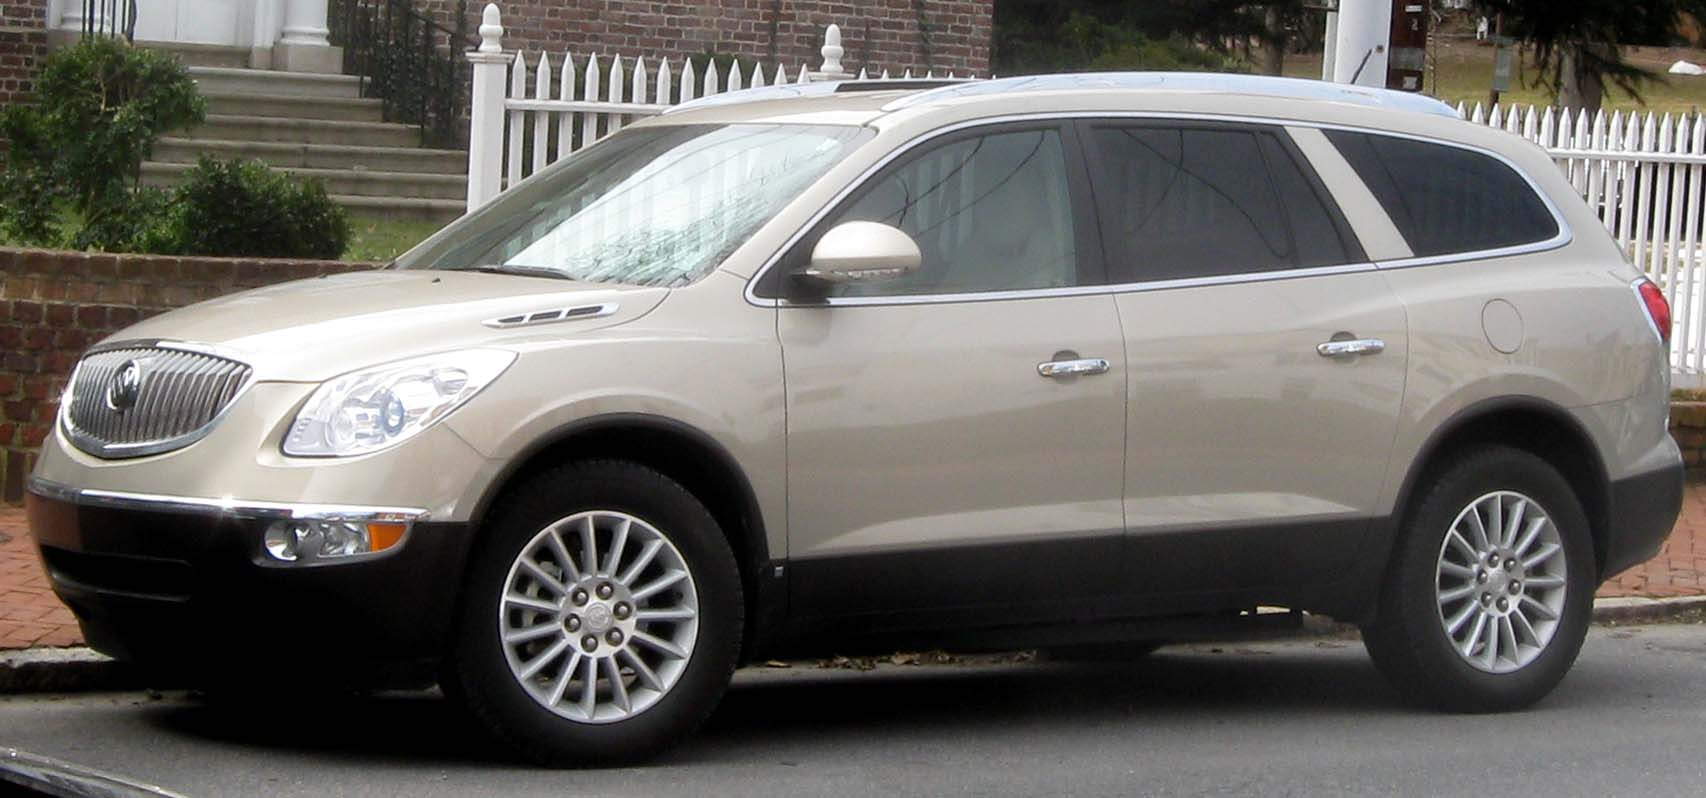 2010 Buick Enclave Information And Photos Momentcar